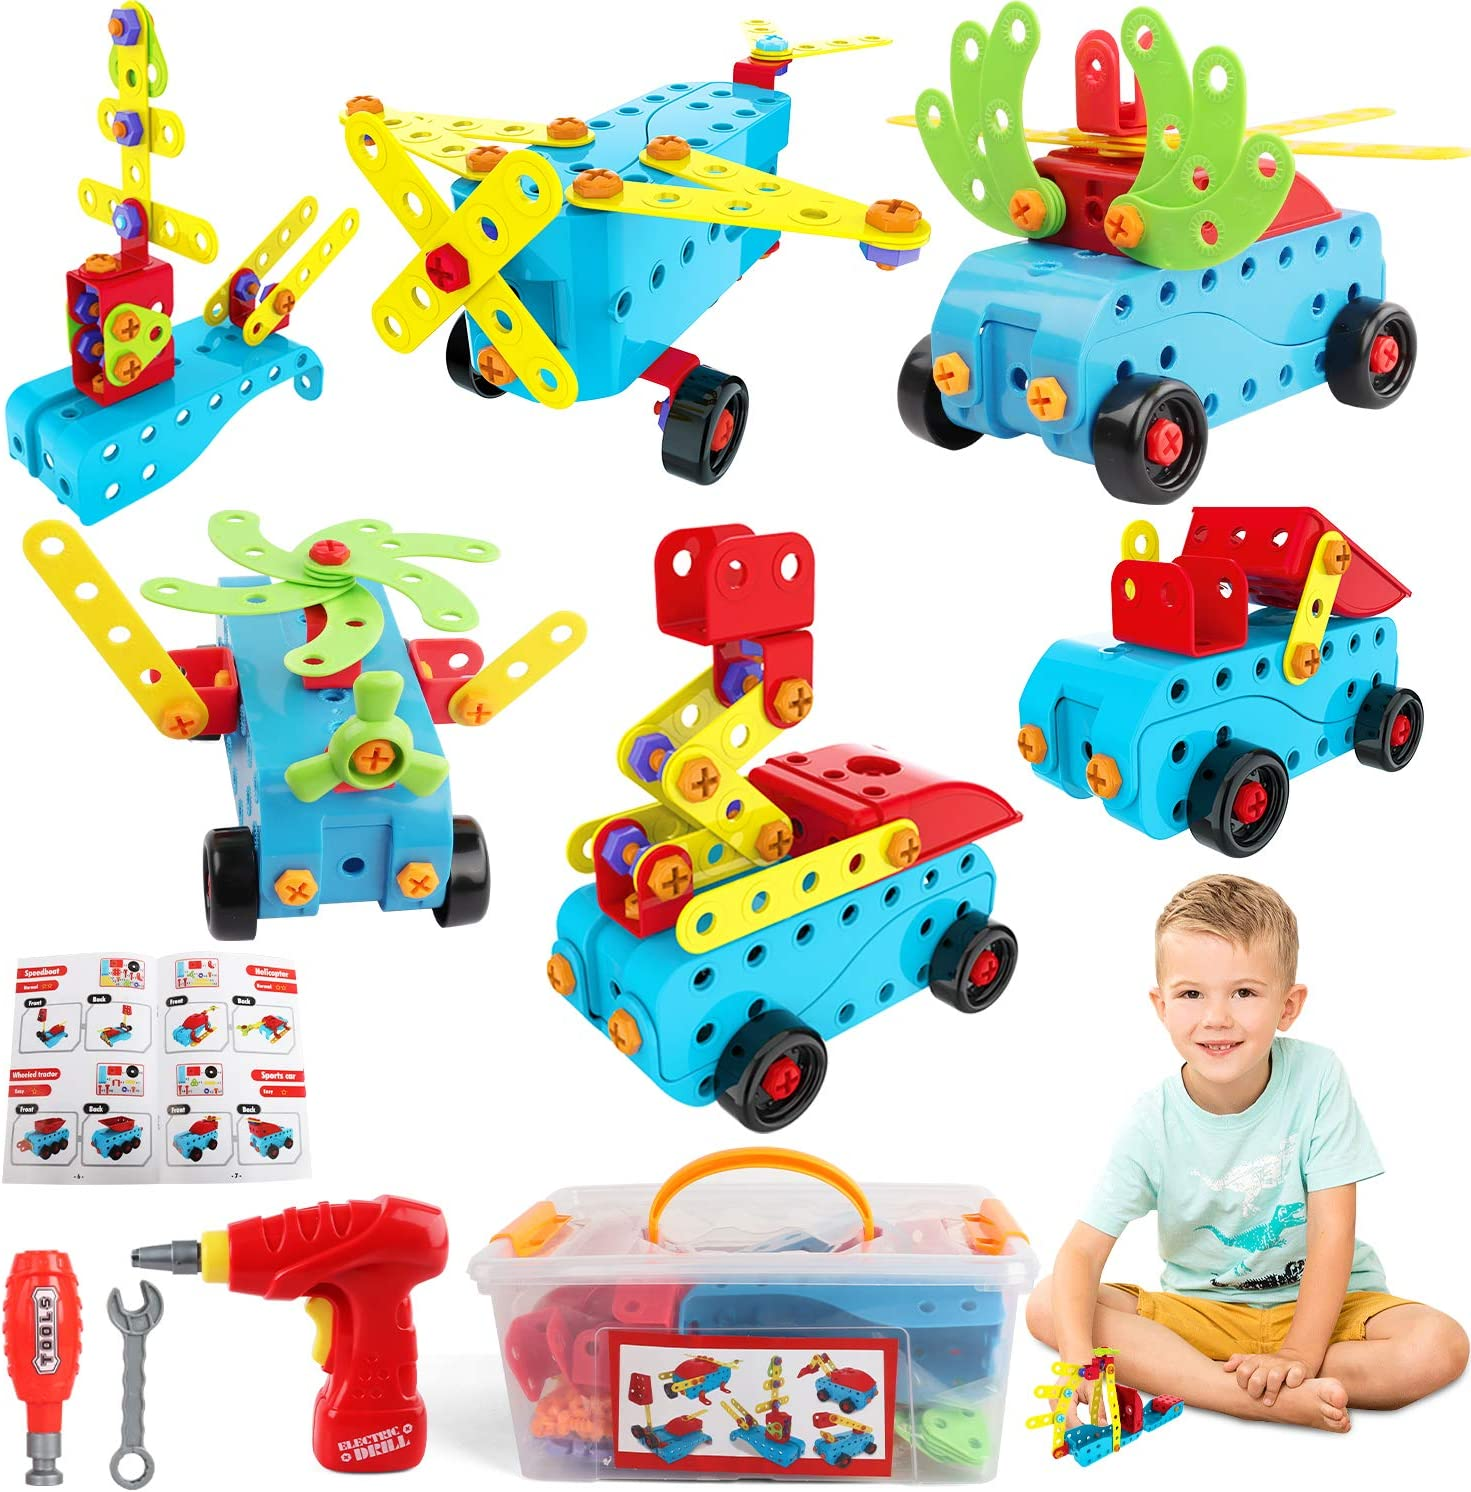 Over item handling HONYAT 296 Pieces STEM Toys Electric 1 year warranty Toy Puzzle S Drill Building